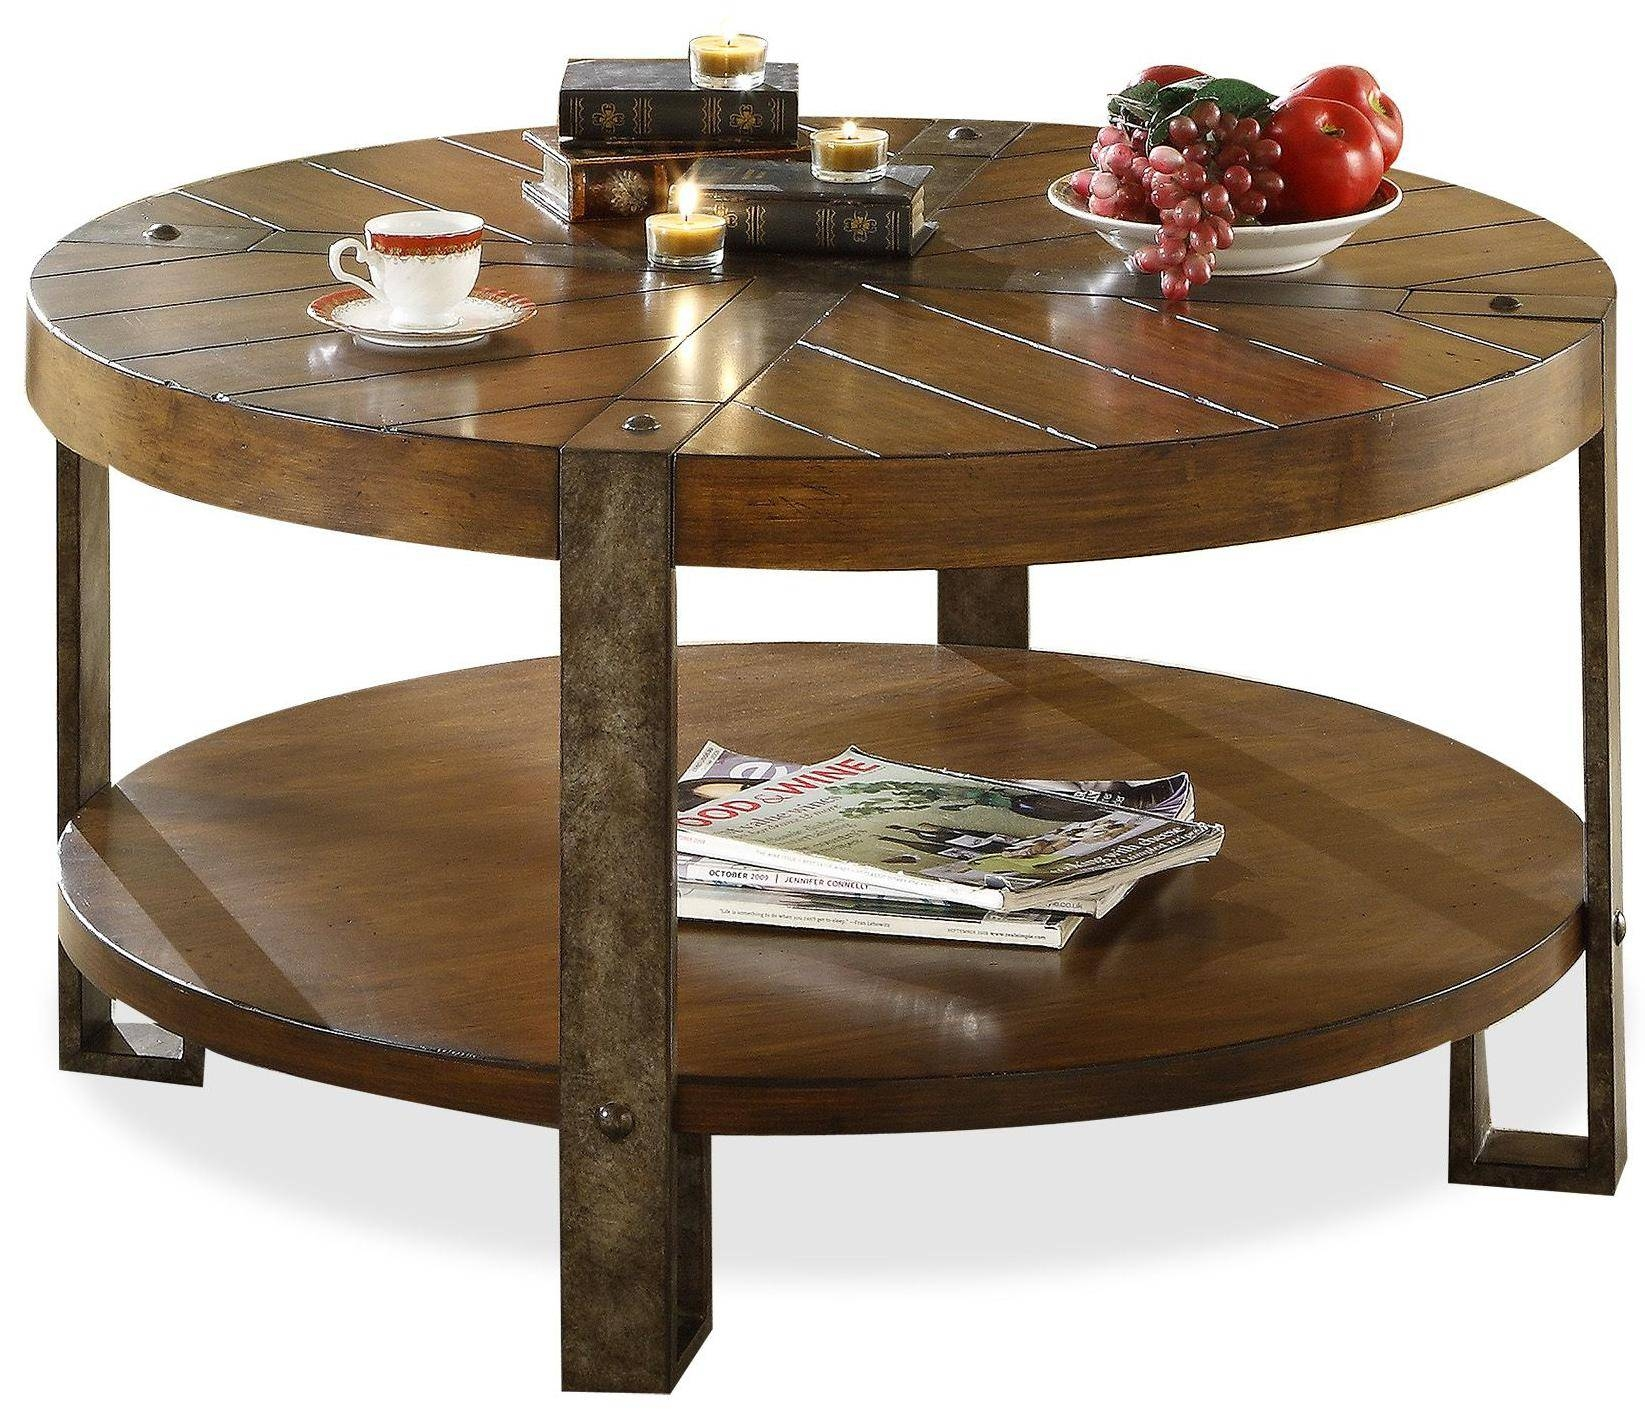 Round Coffee Tables With Storage | Homesfeed for Round Coffee Tables With Storage (Image 26 of 30)